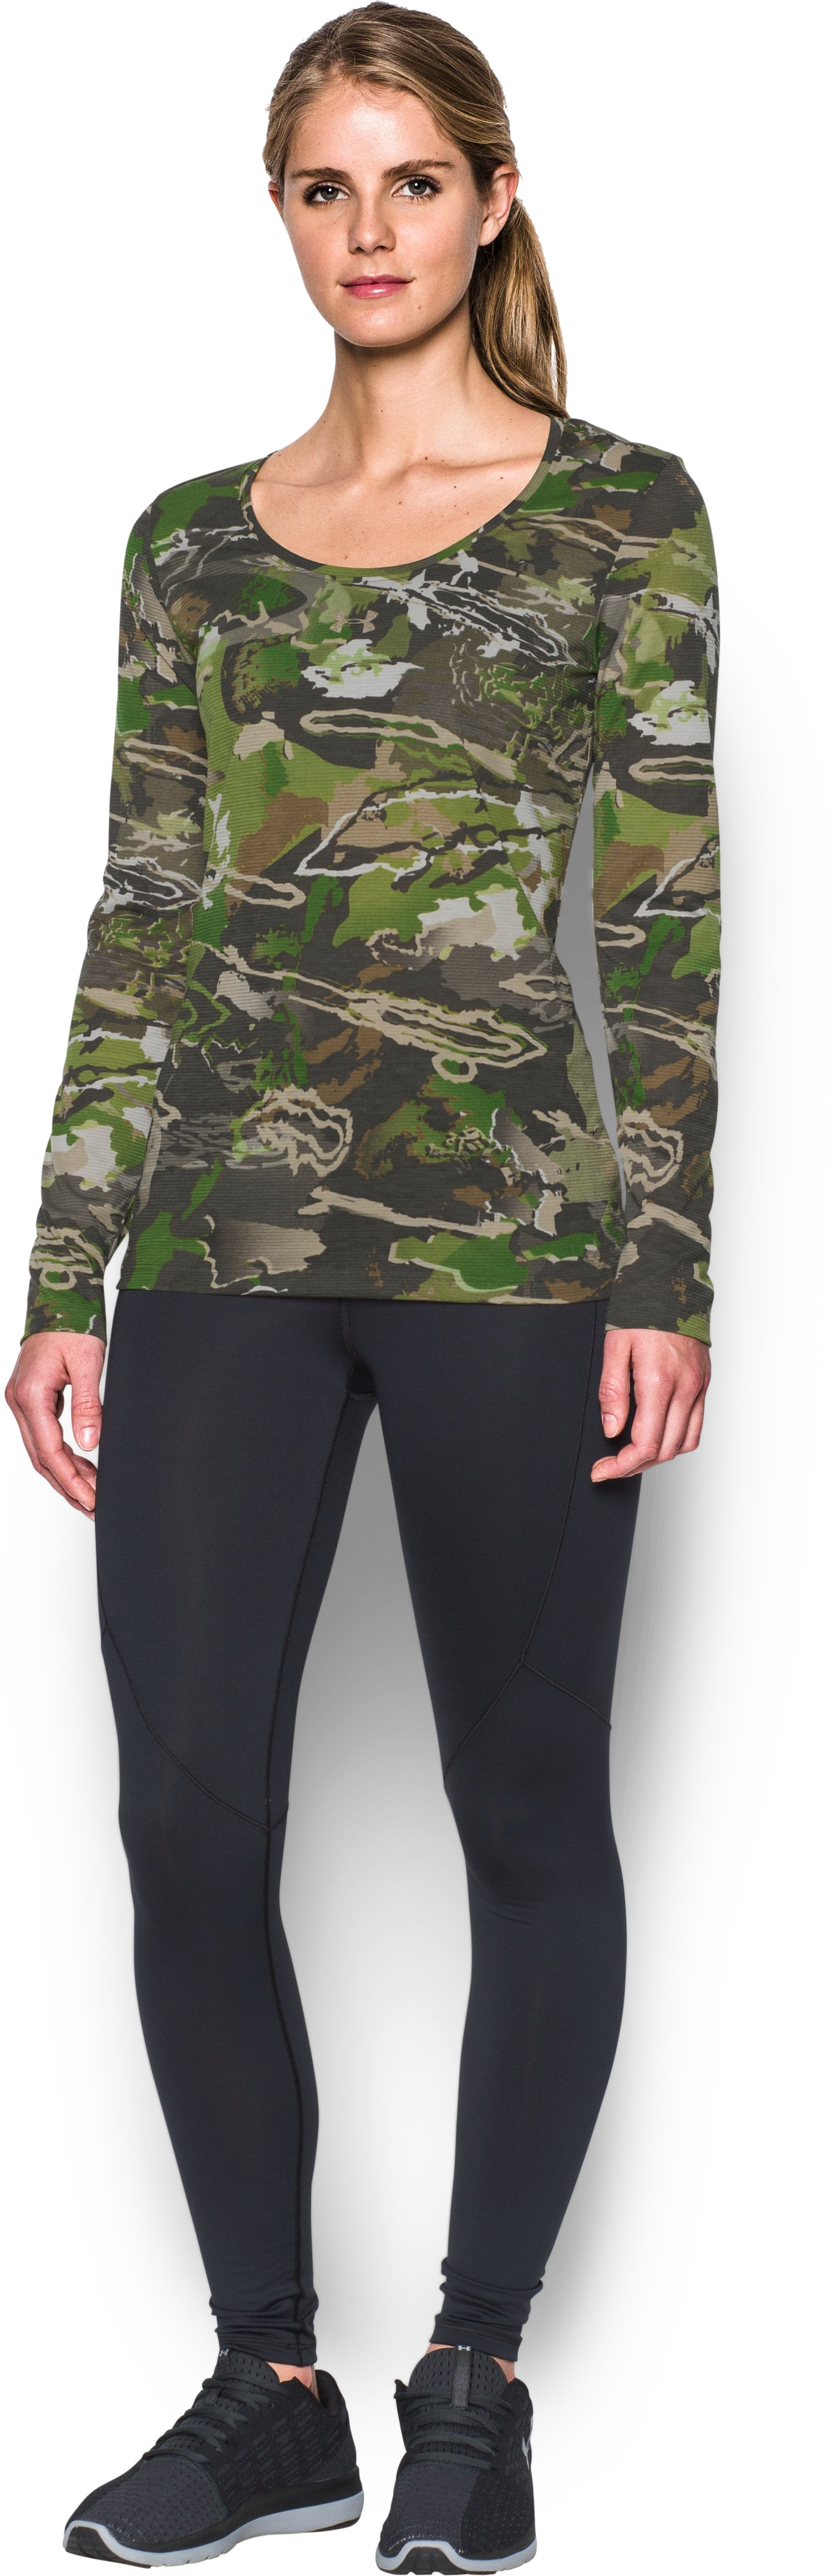 Women's UA Threadborne™ Early Season Long Sleeve, RIDGE REAPER® FOREST, Front